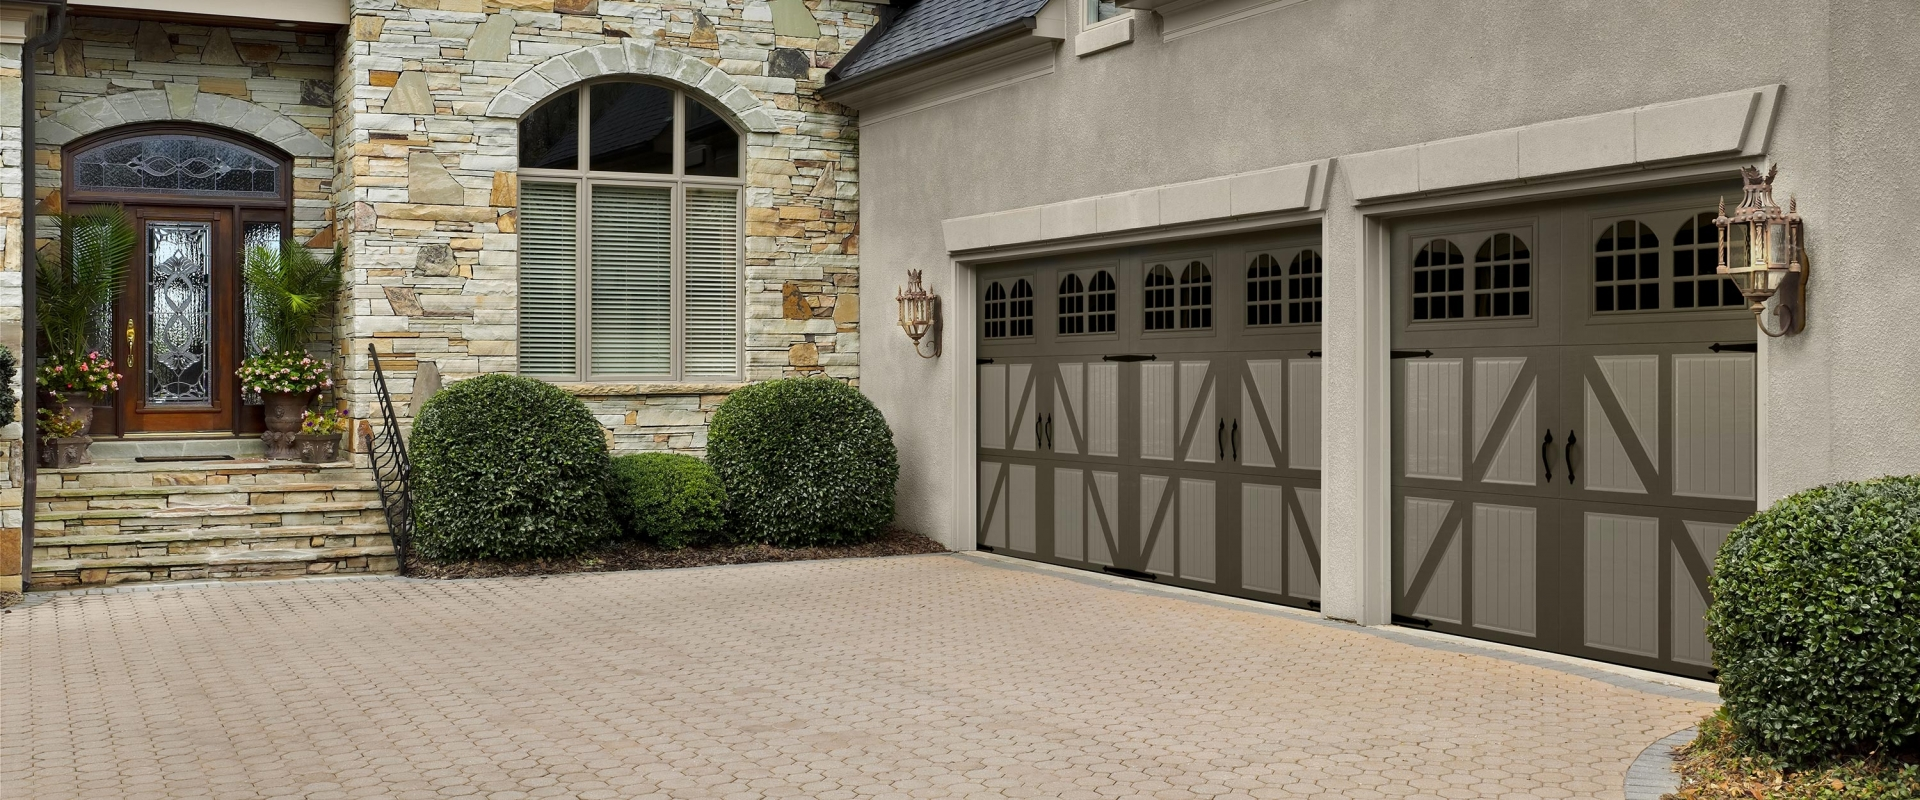 full marvelous doors hgtv garage installation install marvelousing door ceiling of size sears high and prices charlotte seattle repair company nc opener renton electric ideas costco installing